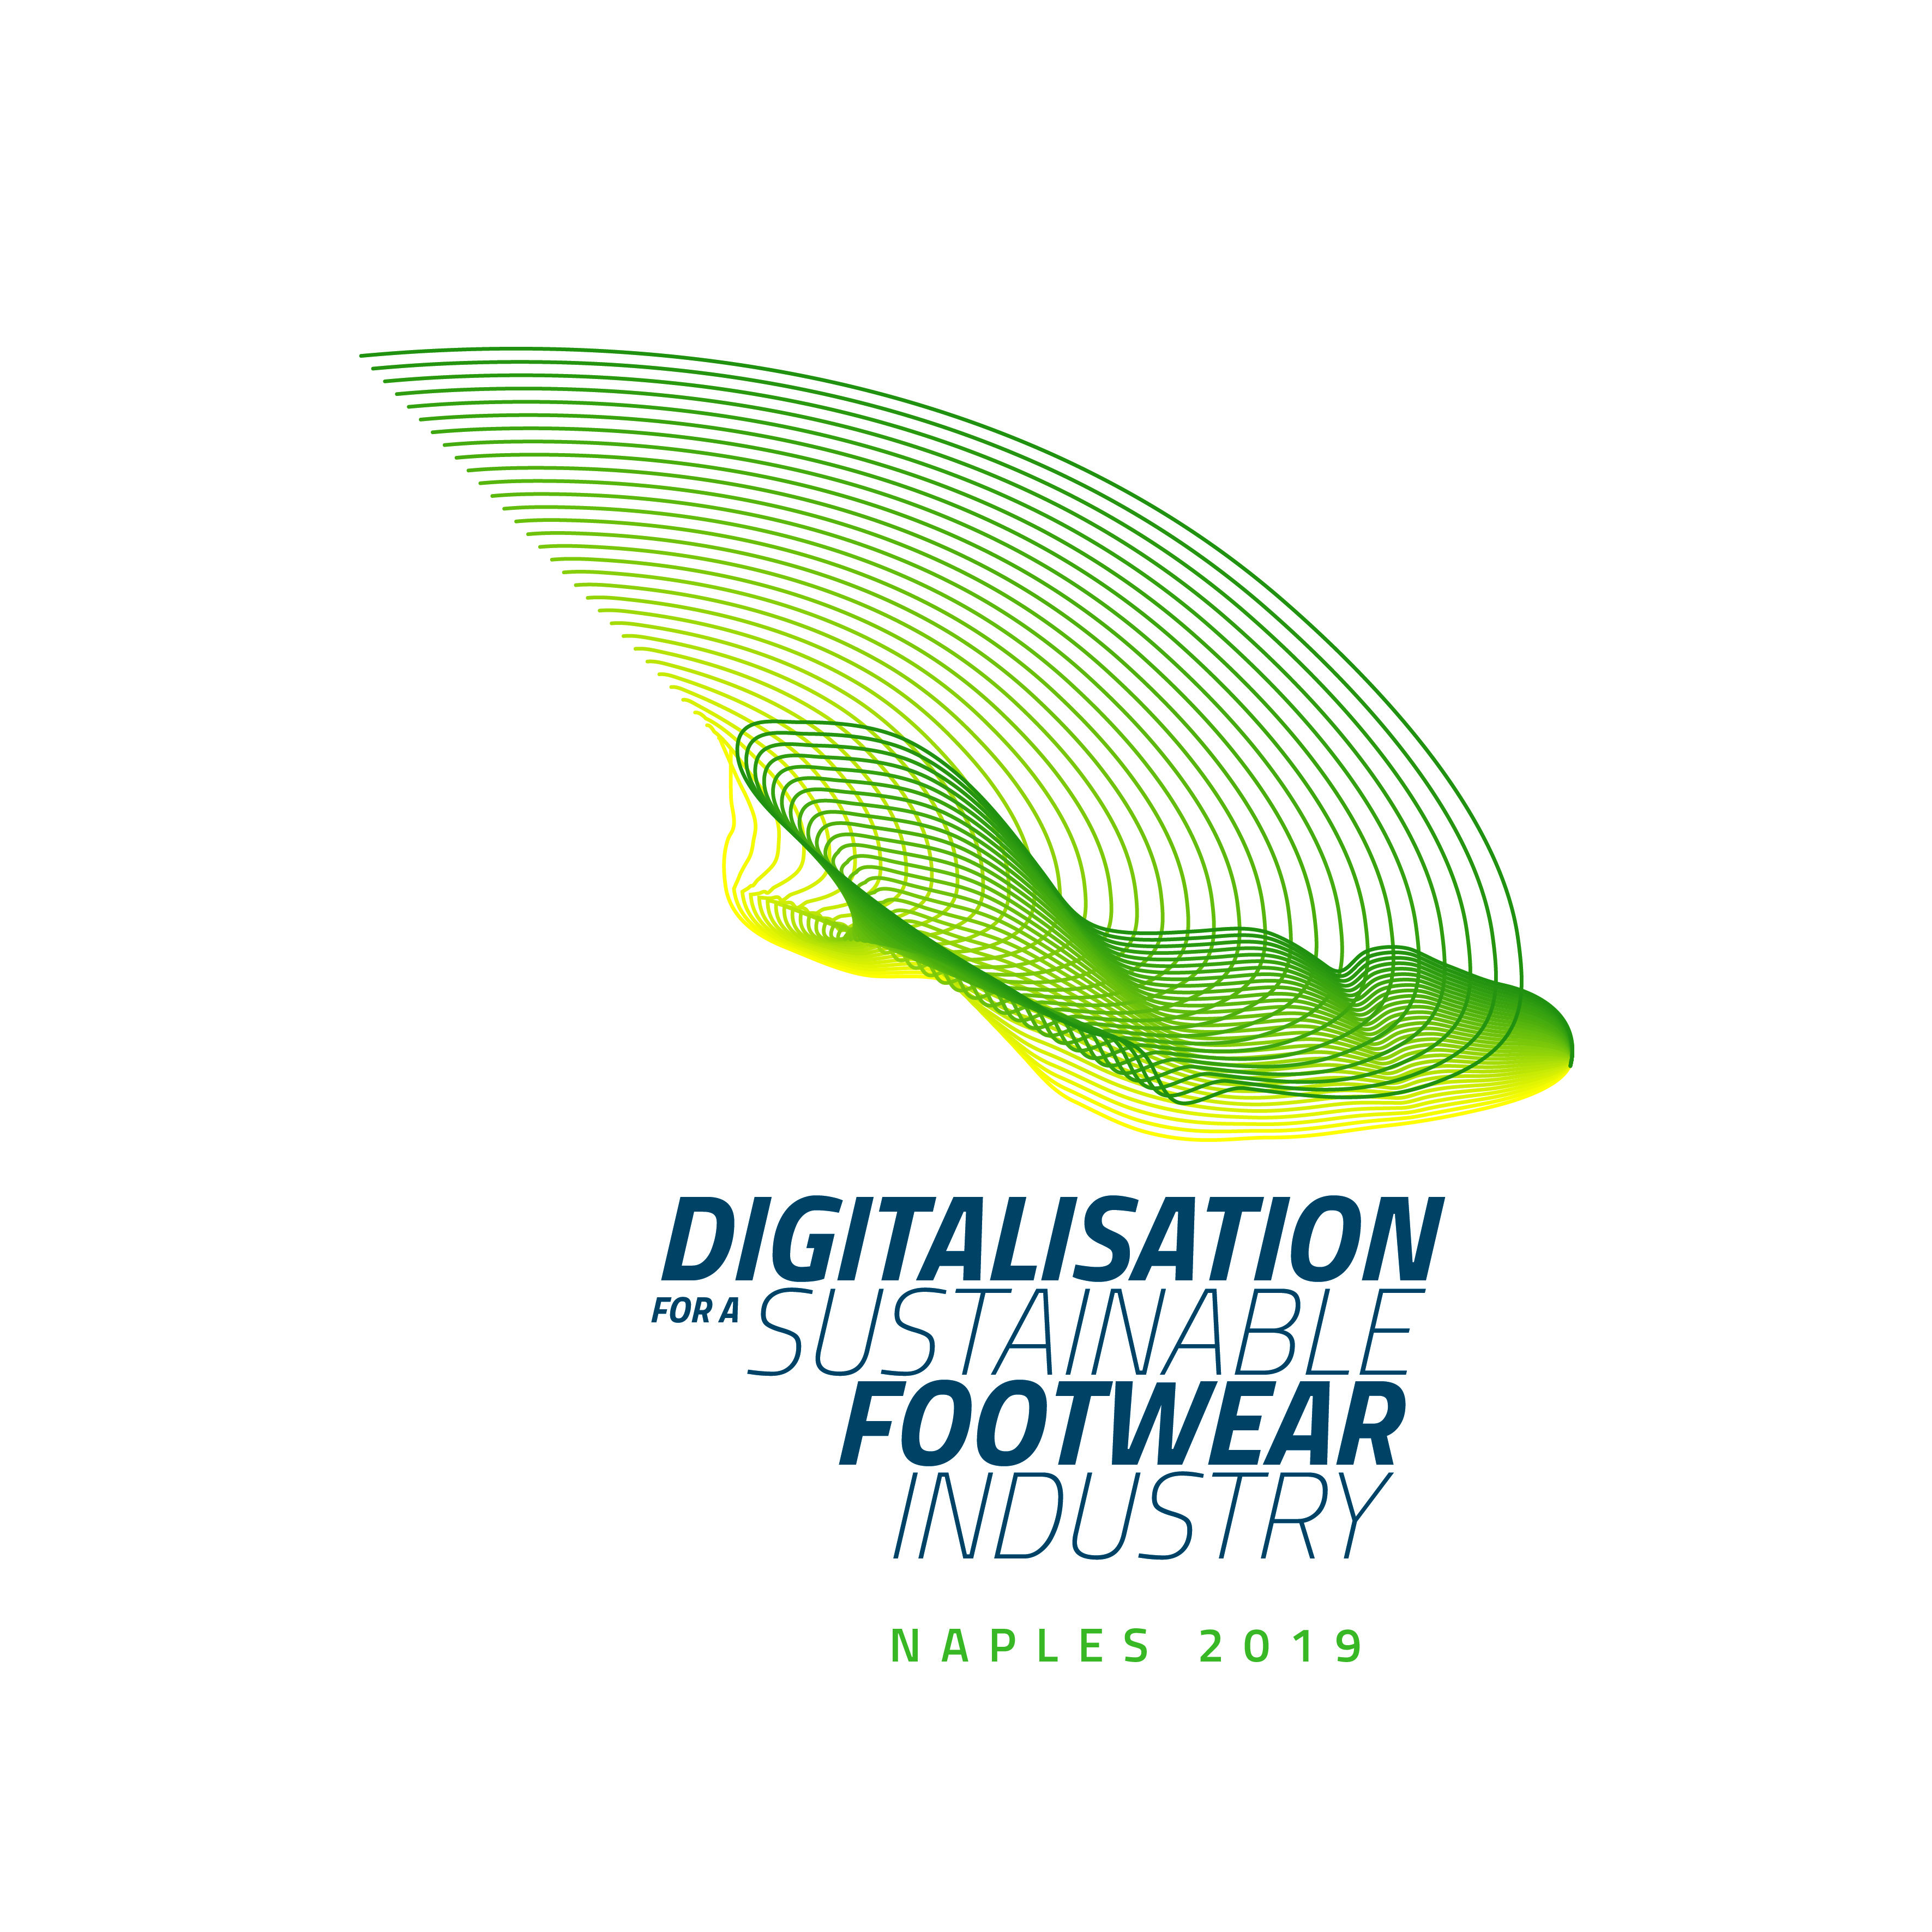 Registration for the World Footwear Congress is open